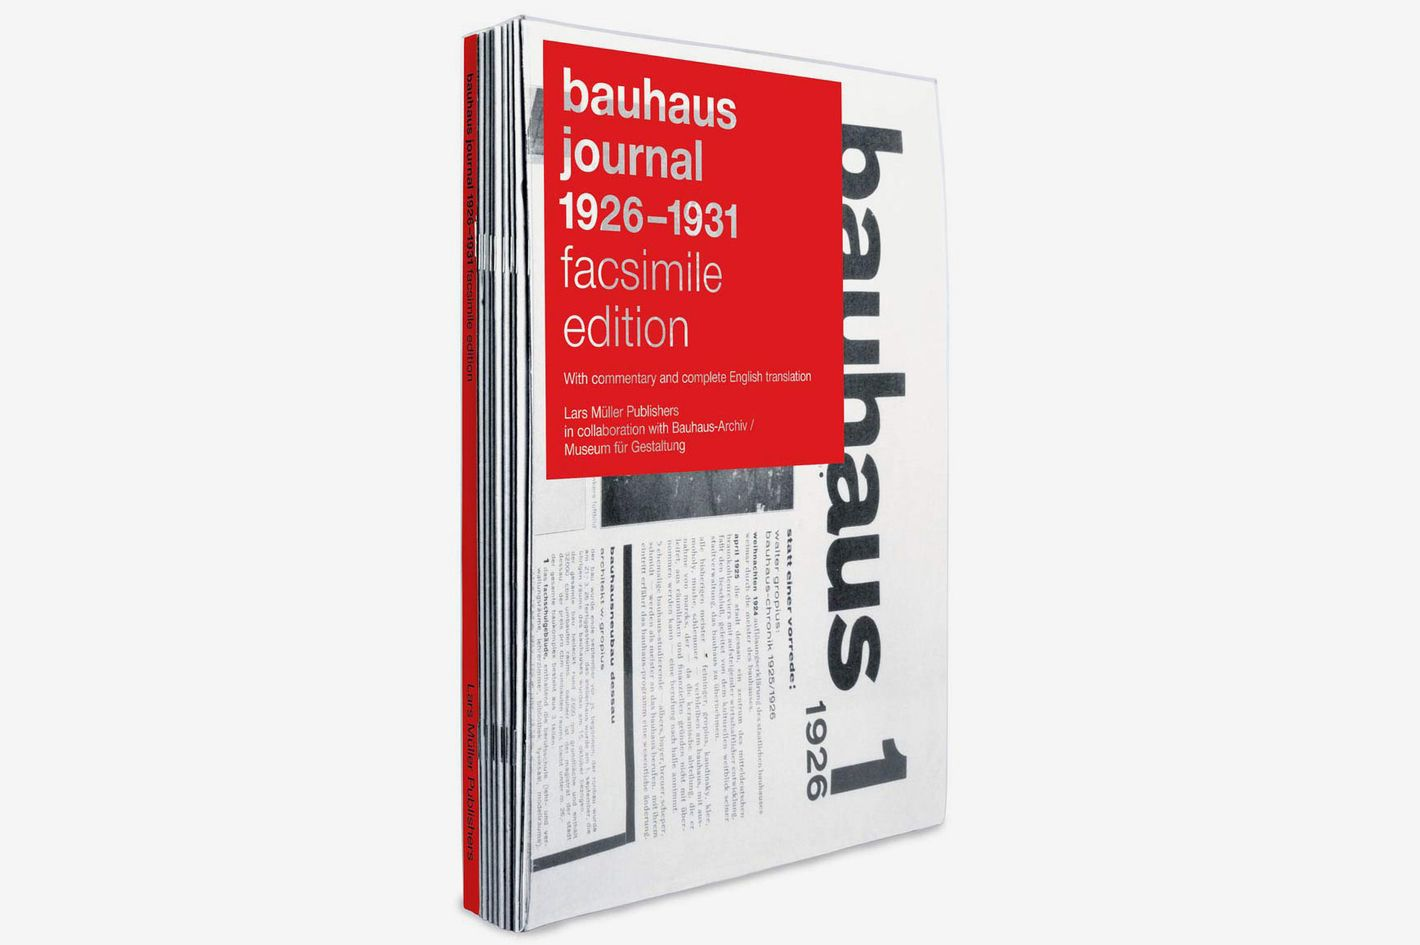 Bauhaus Journal 1926 1931 Facsimile Edition